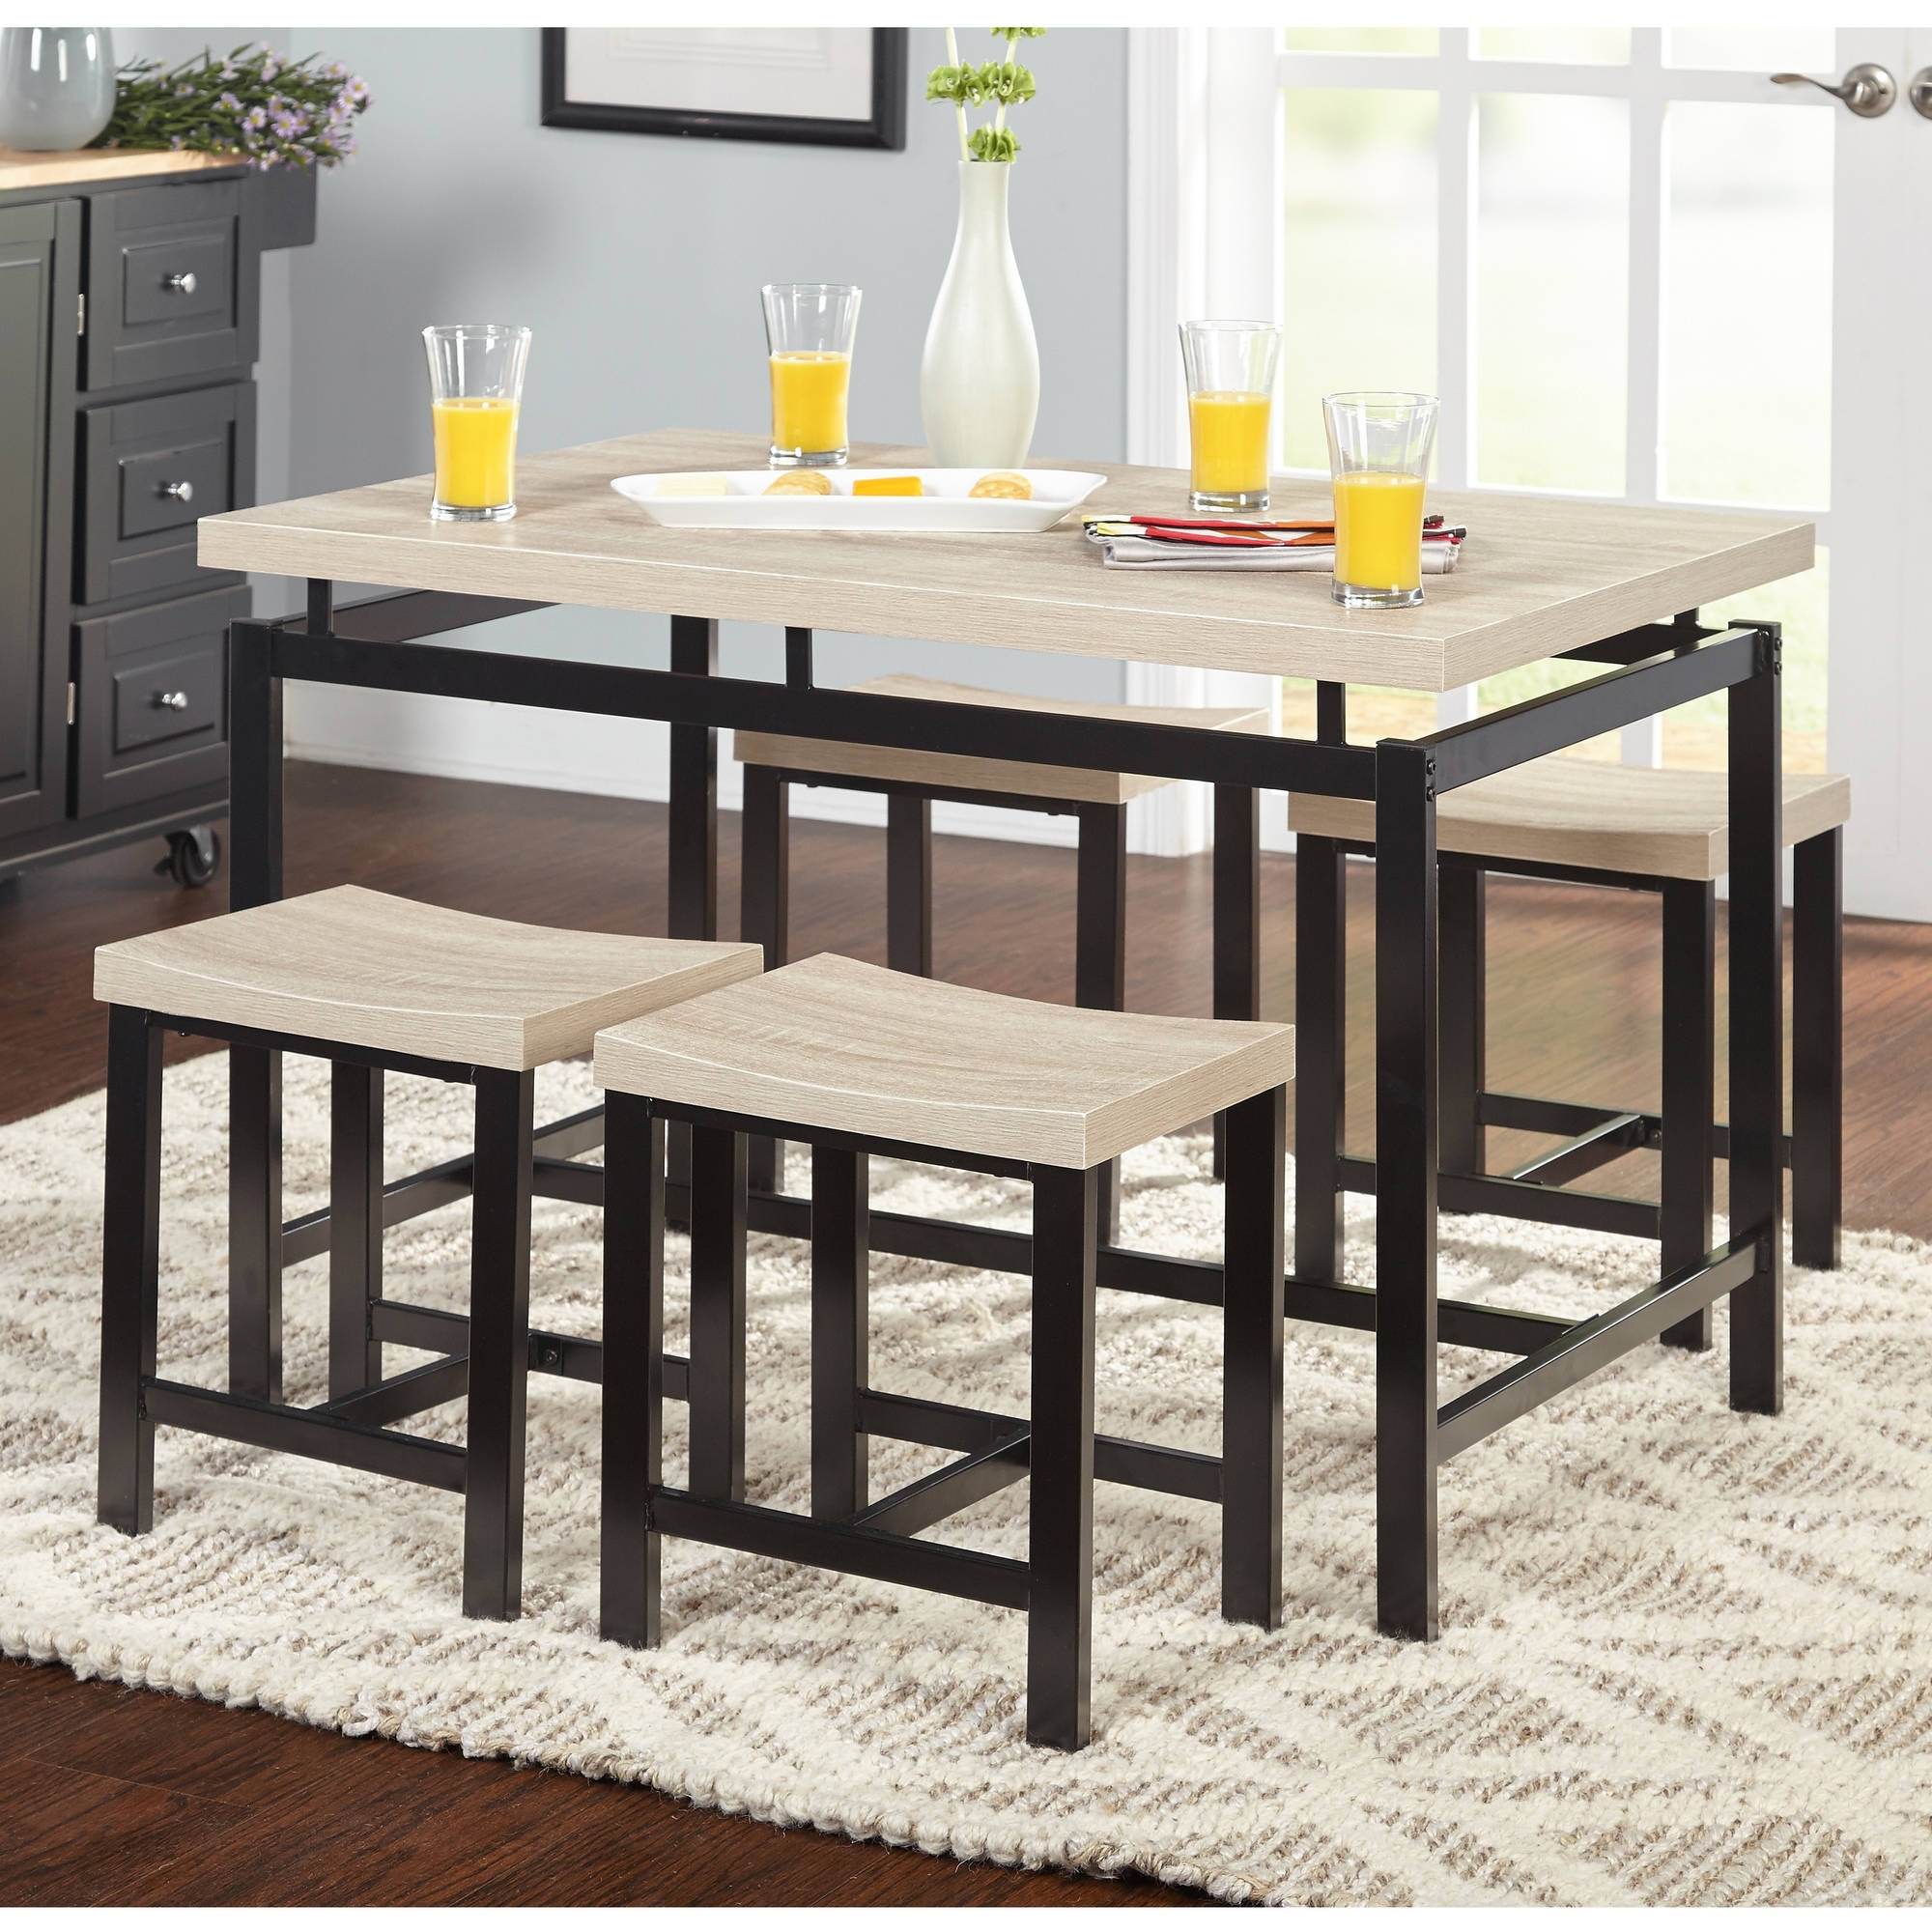 Black Wood Dining Set Contemporary 5 Piece Delano Natural Walmart Inside Most Recent Macie 5 Piece Round Dining Sets (View 20 of 20)